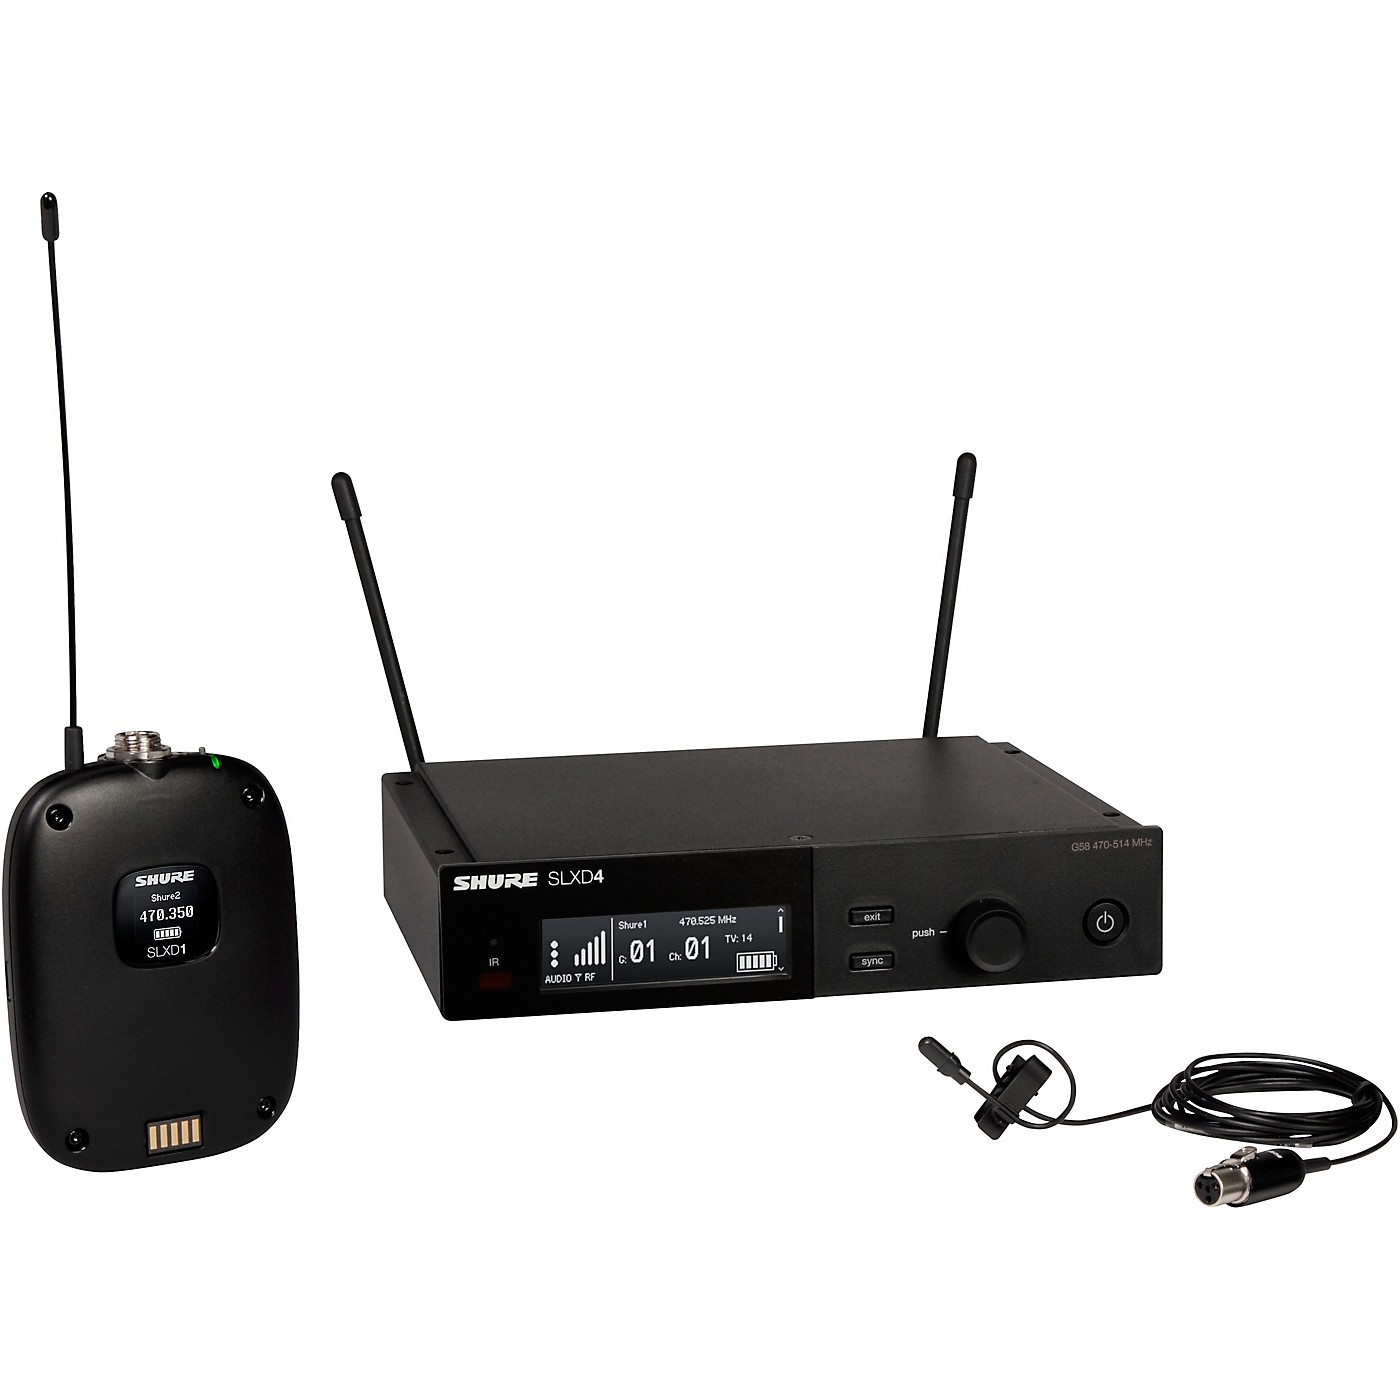 Shure SLXD14/DL4 Wireless System with SLXD1 Bodypack Transmitter, SLXD4 Receiver, and DL4B Lavalier Microphone thumbnail